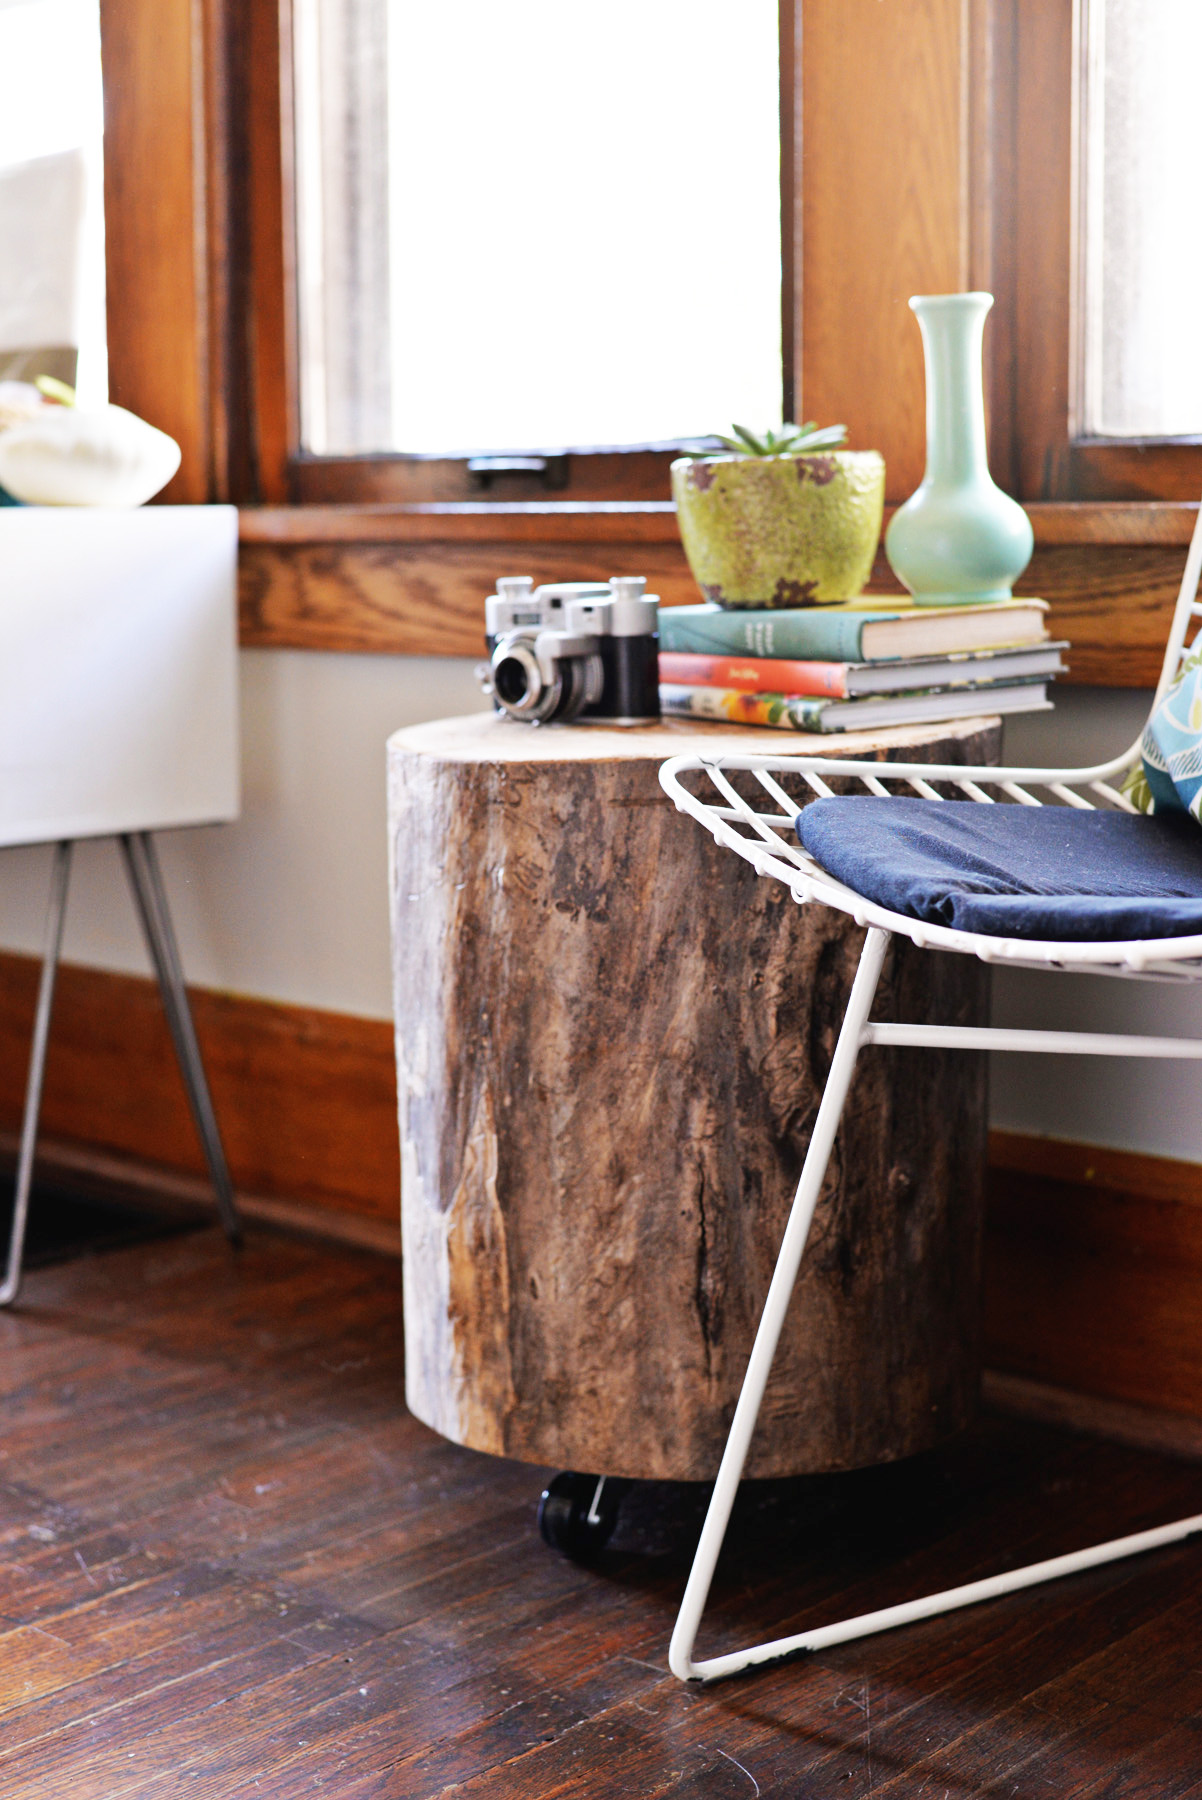 diy tree stump side table wood accent mosaic patio painted nightstands cherry end set drawer file cabinet dining room chairs edmonton mid century modern rectangle threshold